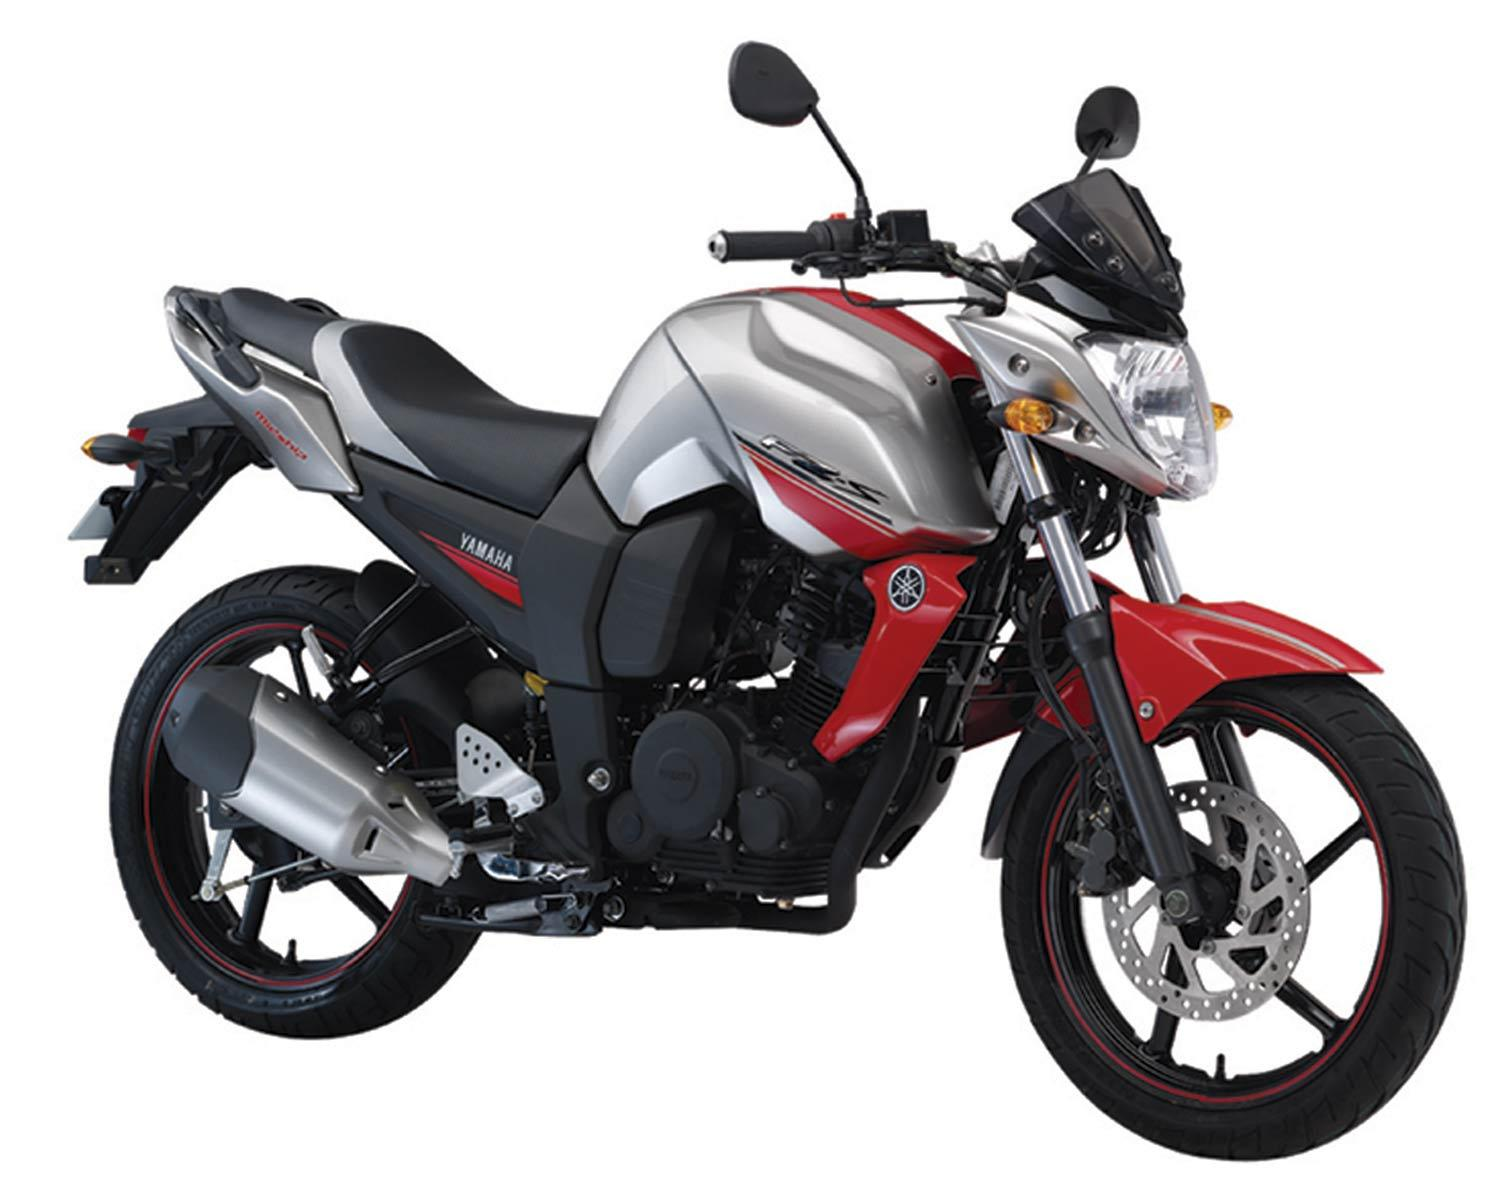 What is your car and motorcycle 2009 yamaha fzs specification